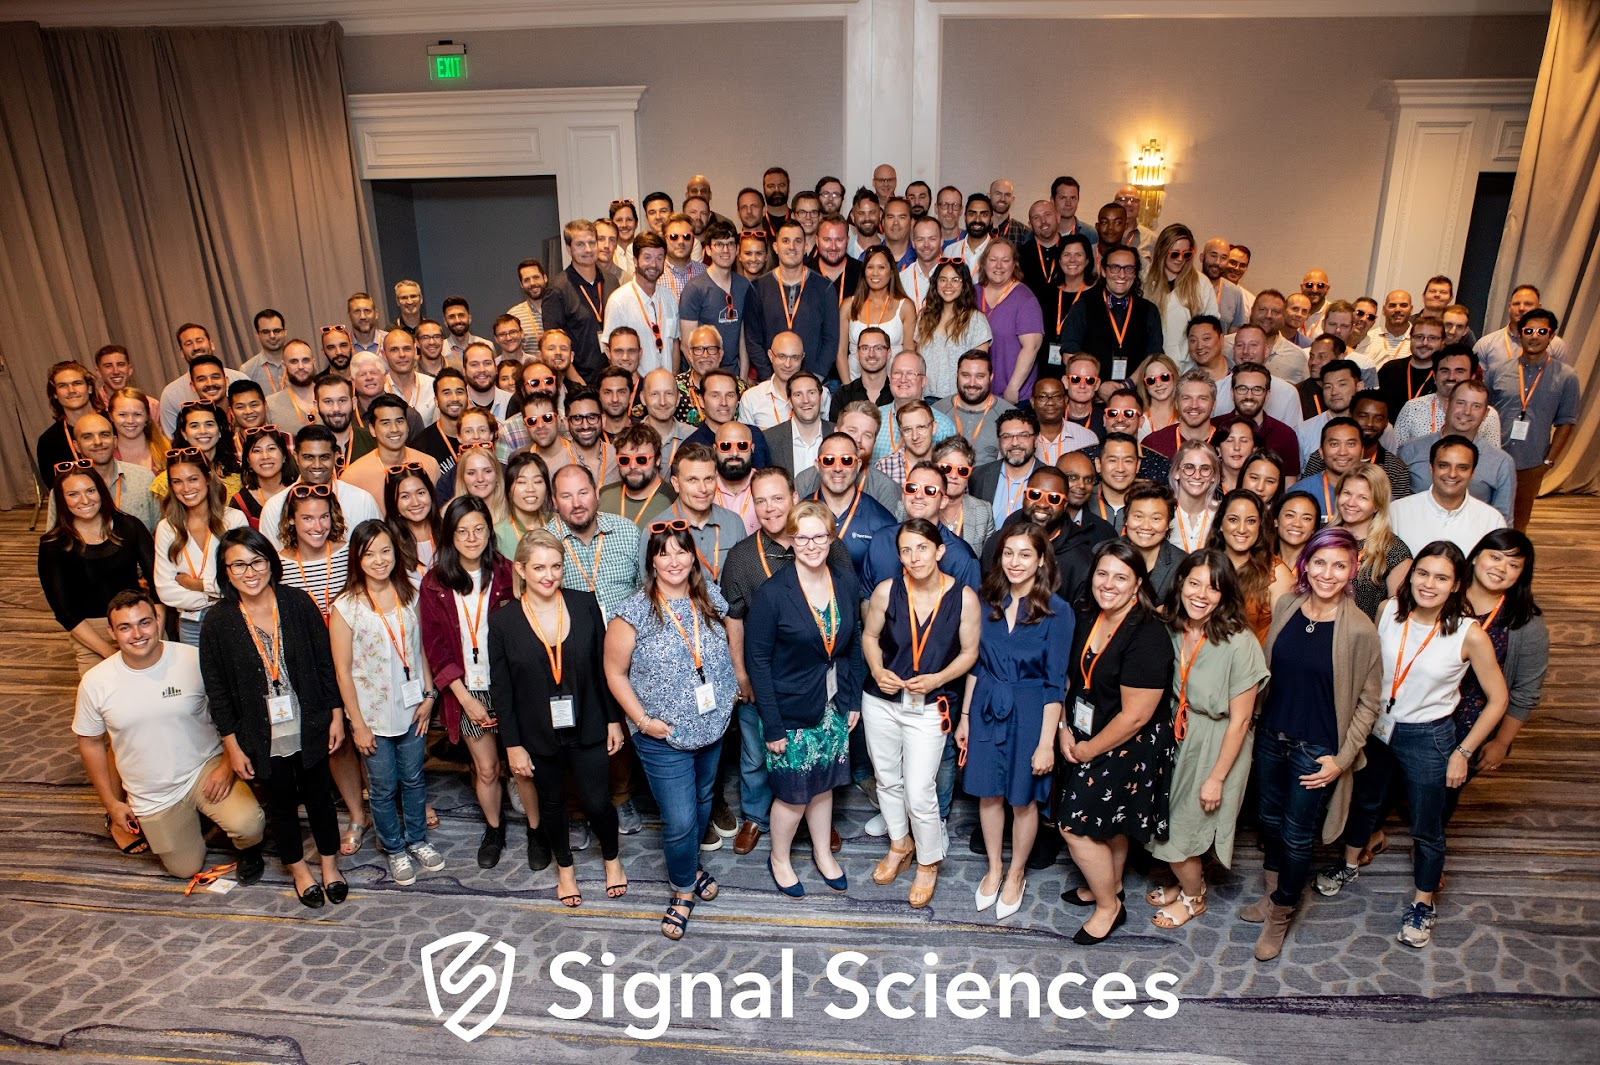 The Signal Sciences team